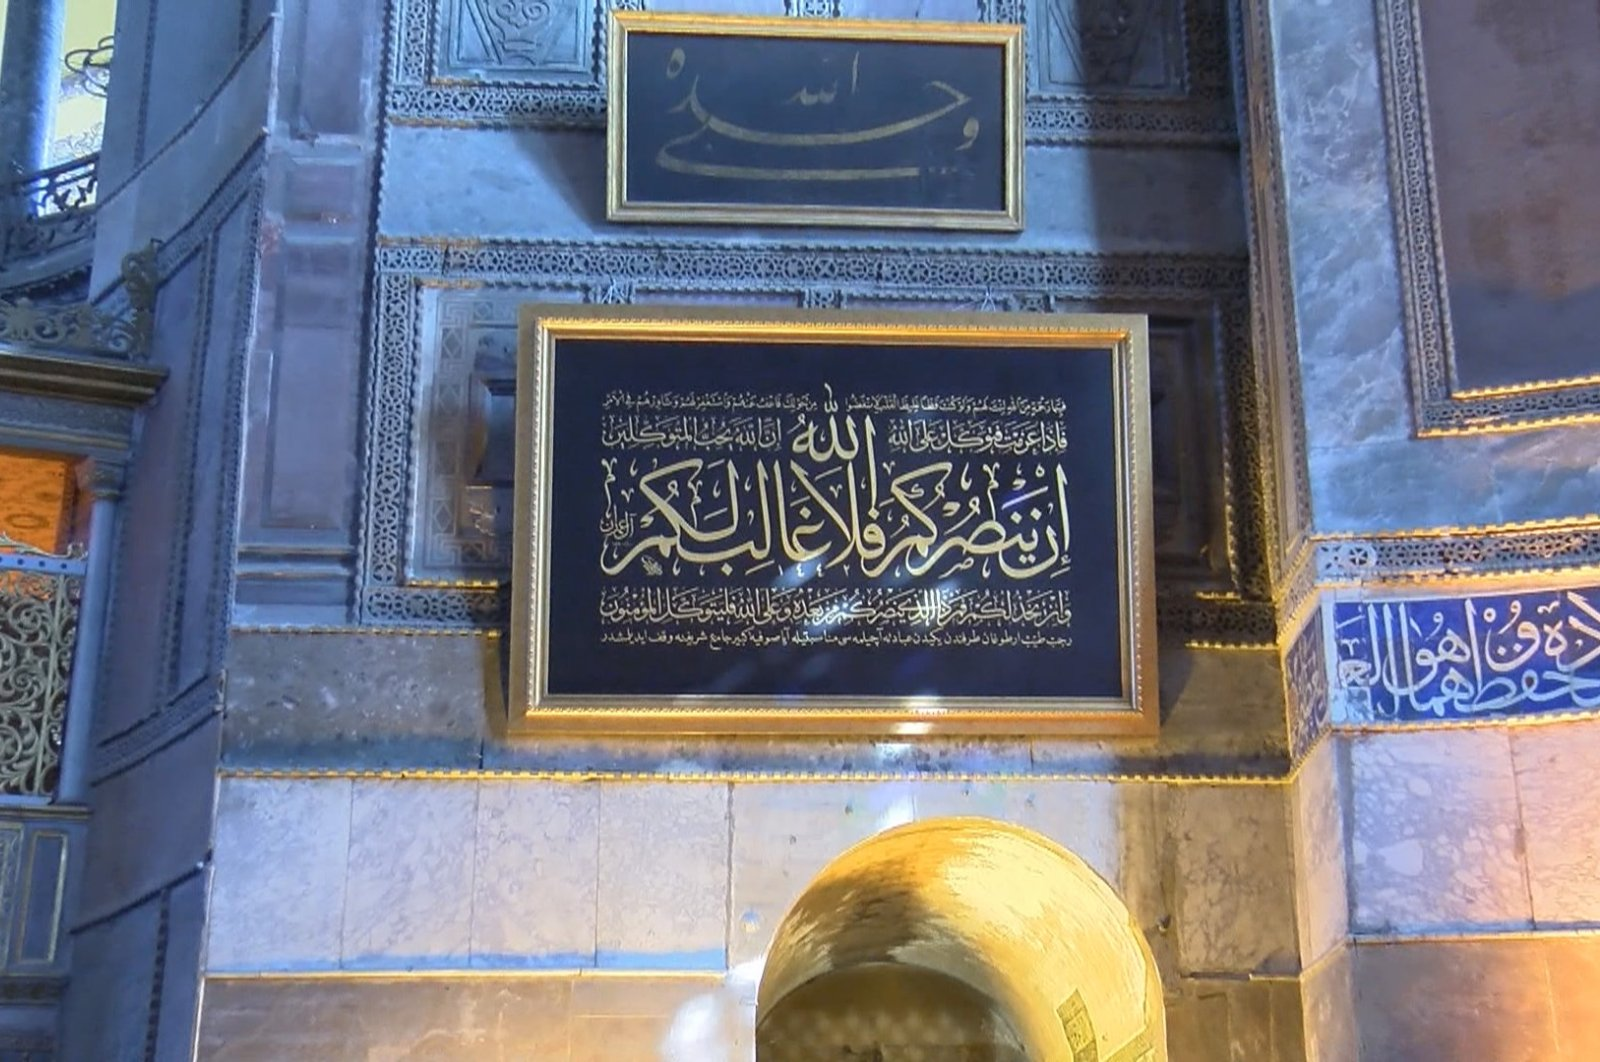 A close-up of the calligraphy plate at the Hagia Sophia Grand Mosque, Istanbul, Turkey, Dec. 8, 2020. (AA PHOTO)